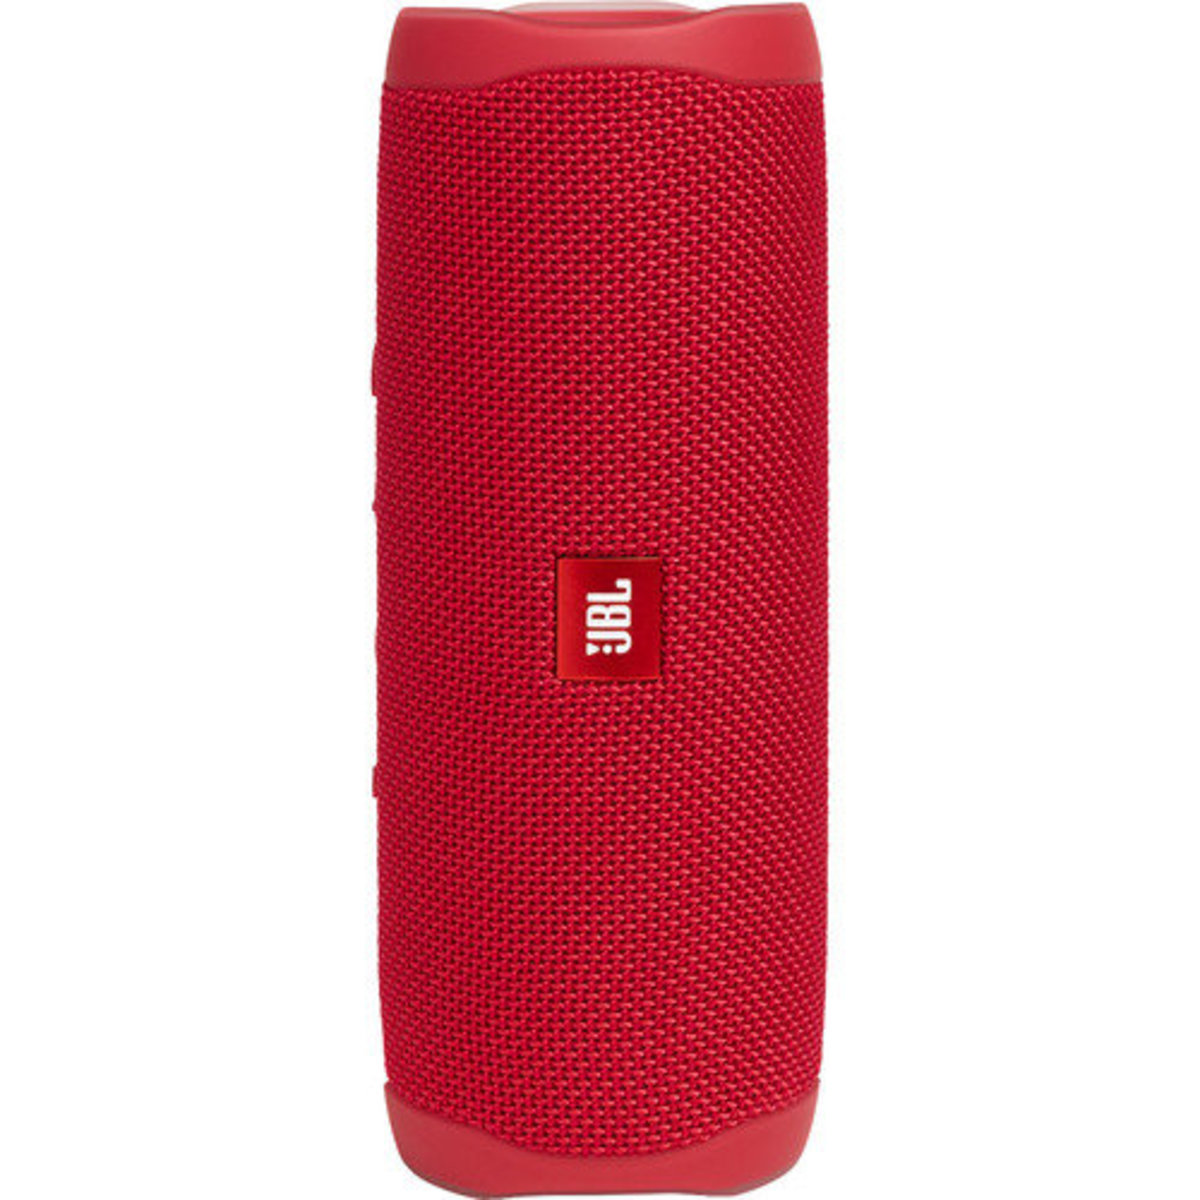 Flip 5 Waterproof Bluetooth Speaker Red Parallel Import